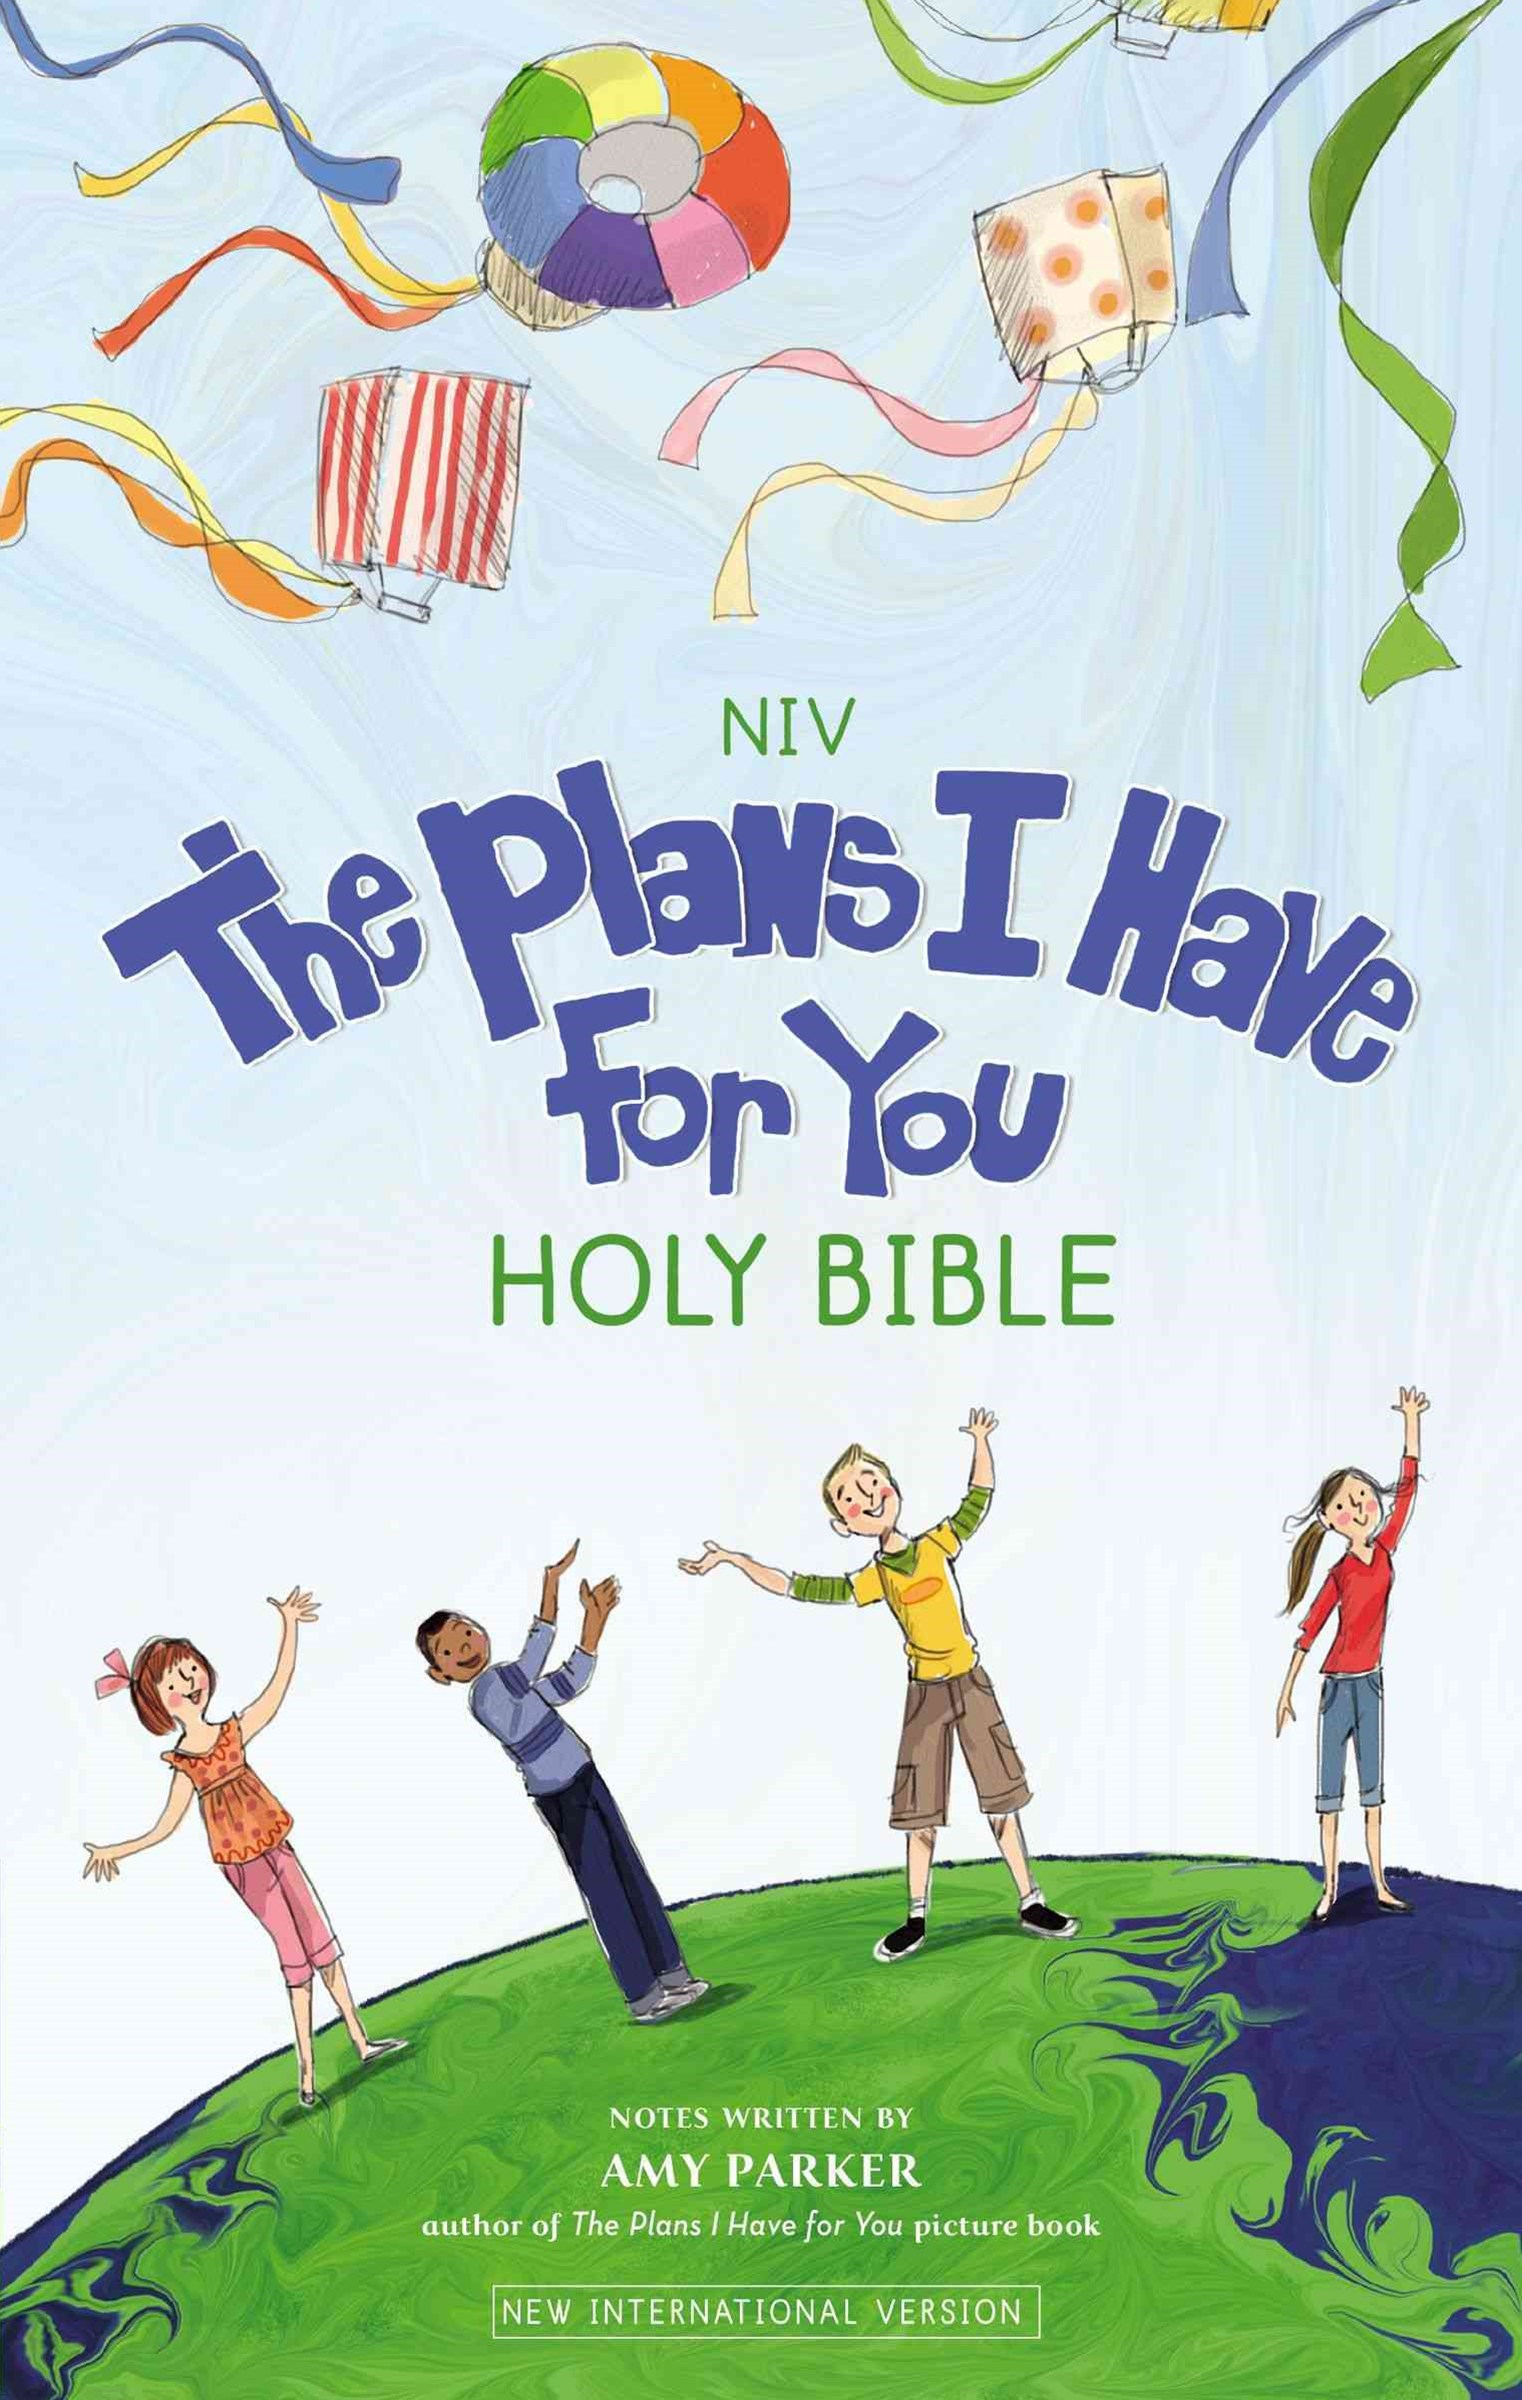 NIV the Plans I Have for You Holy Bible, Hardcover